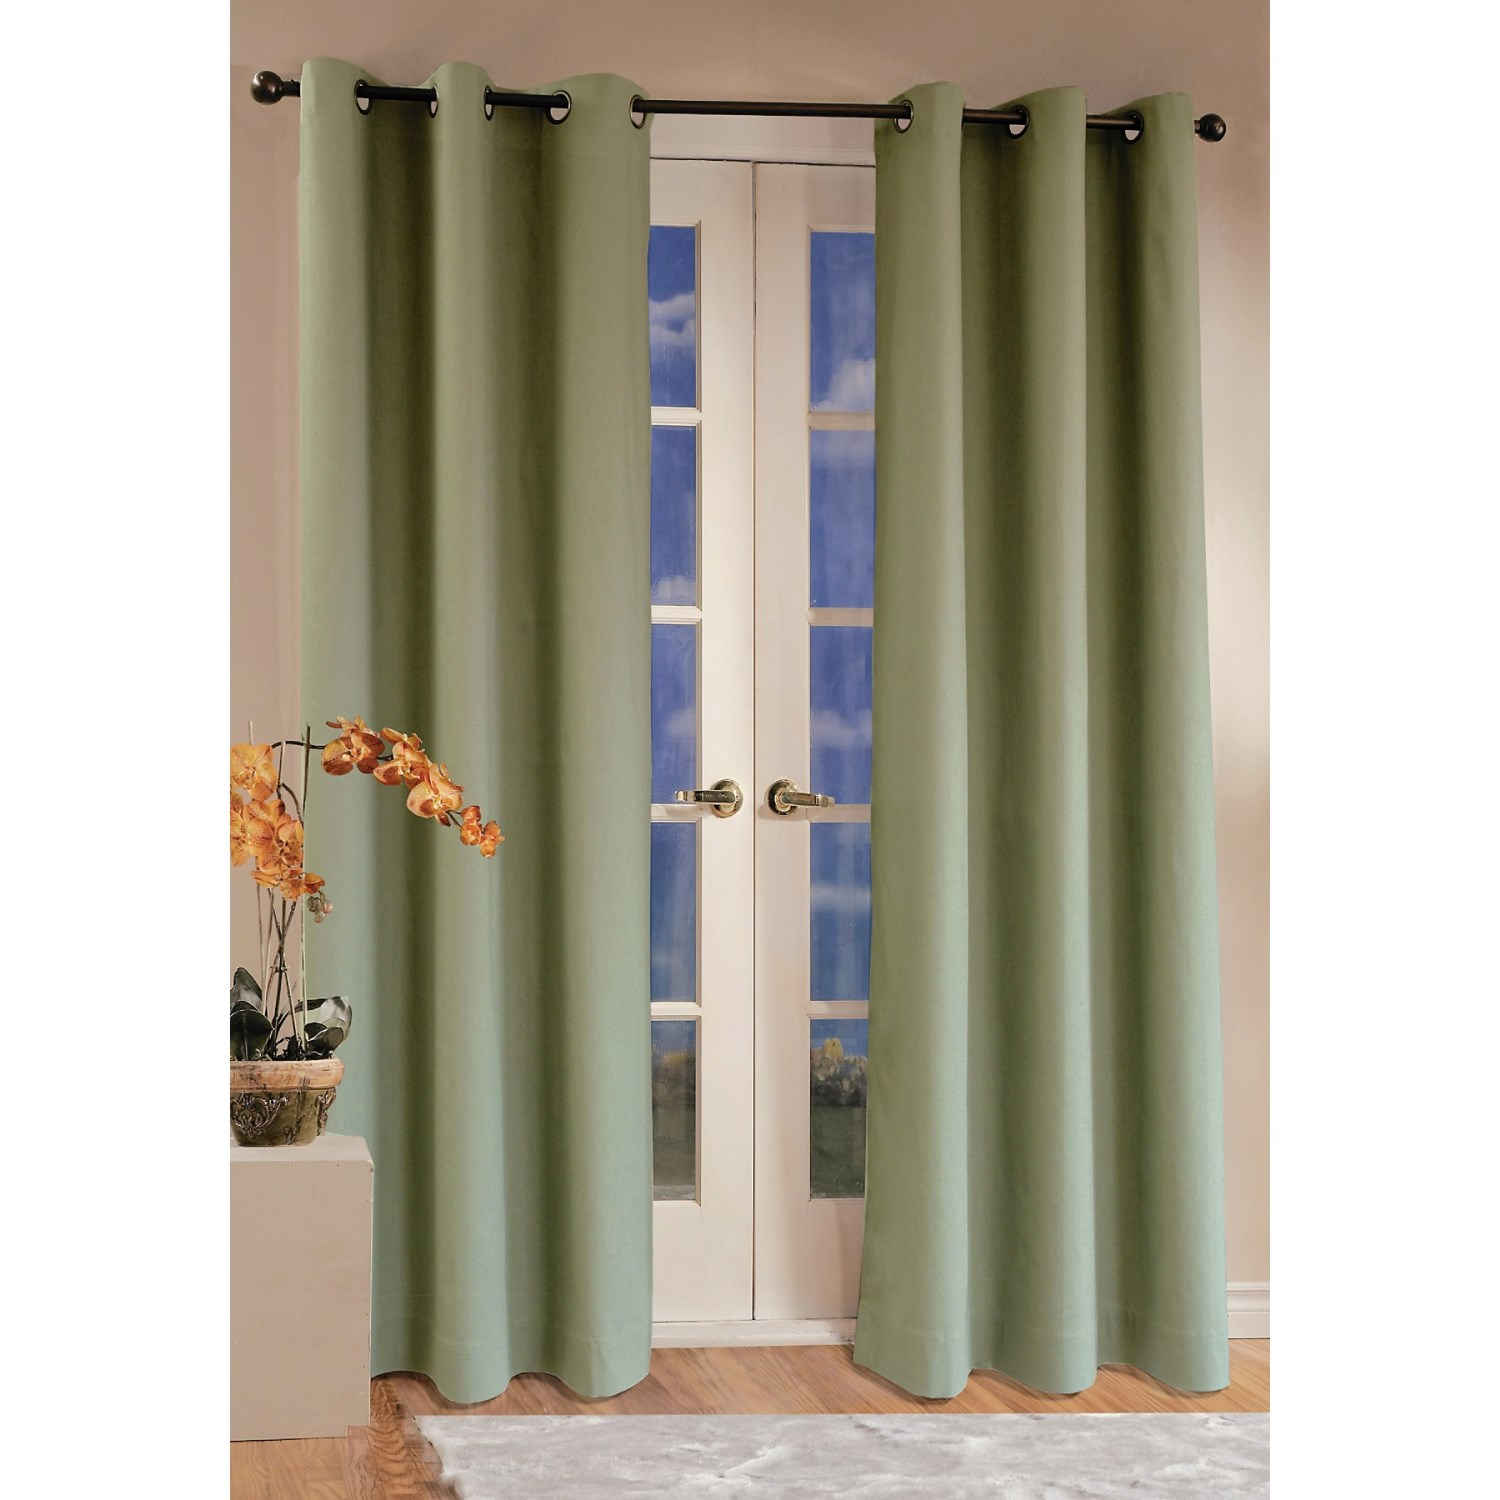 Thermalogic Weathermate Curtains 80x95 Grommet Top Insulated Save 49